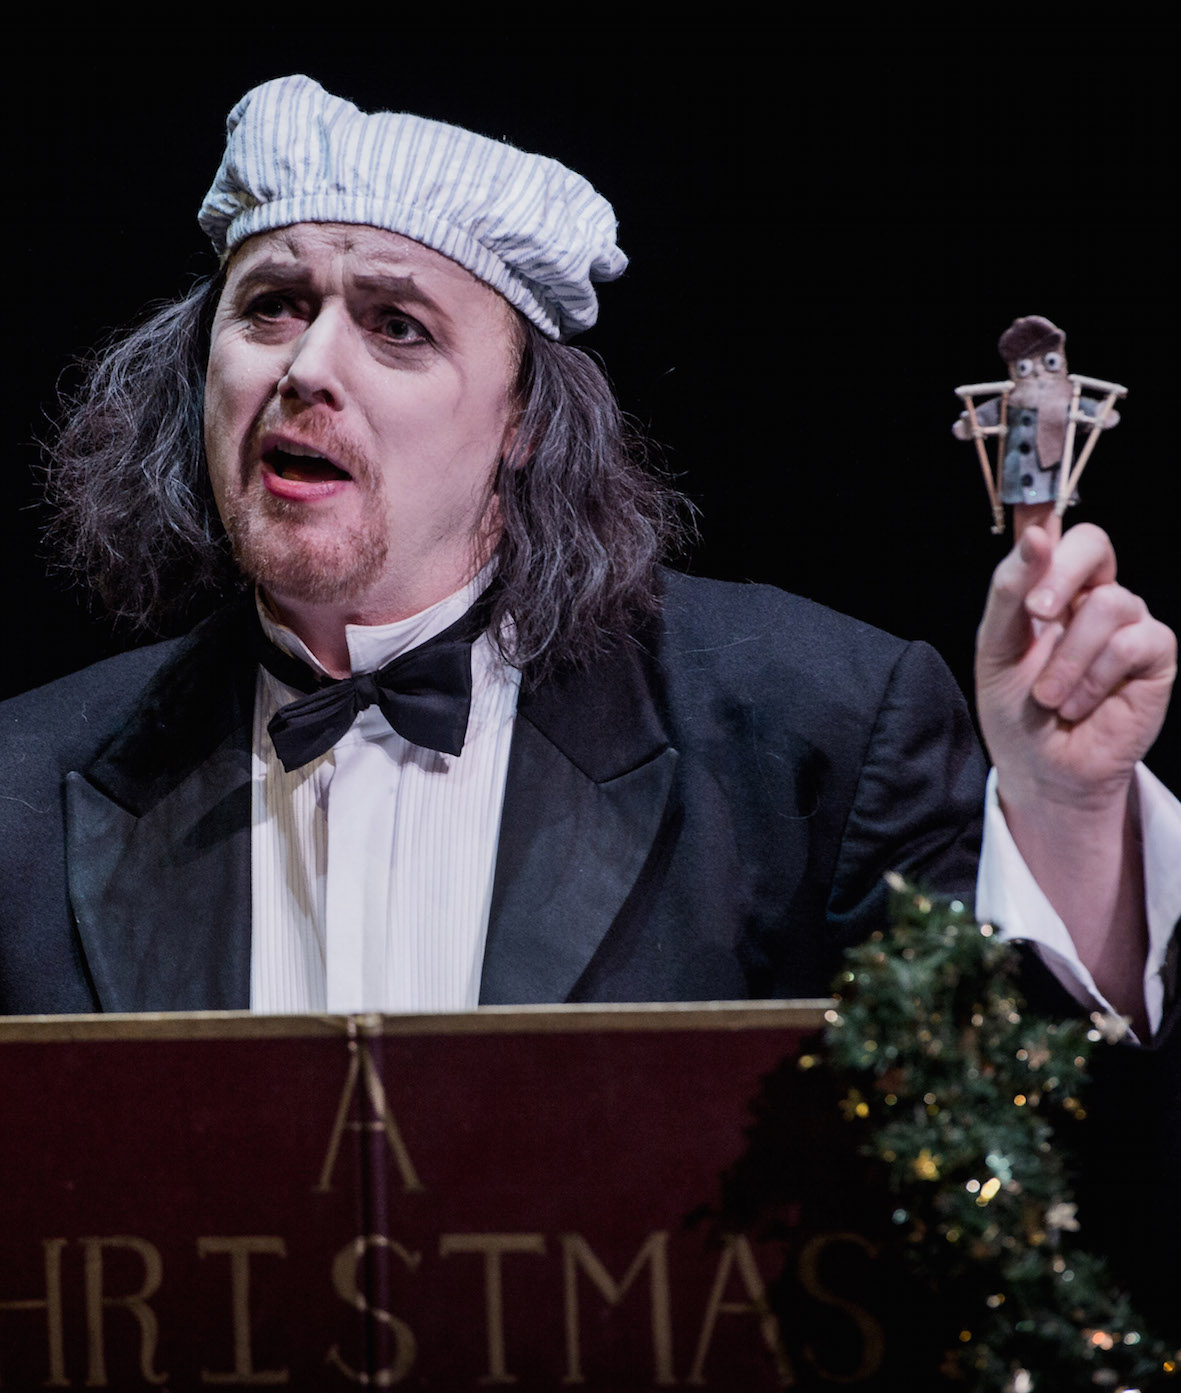 Tiny Tim A Christmas Carol: A Christmas Carol, Welsh National Opera